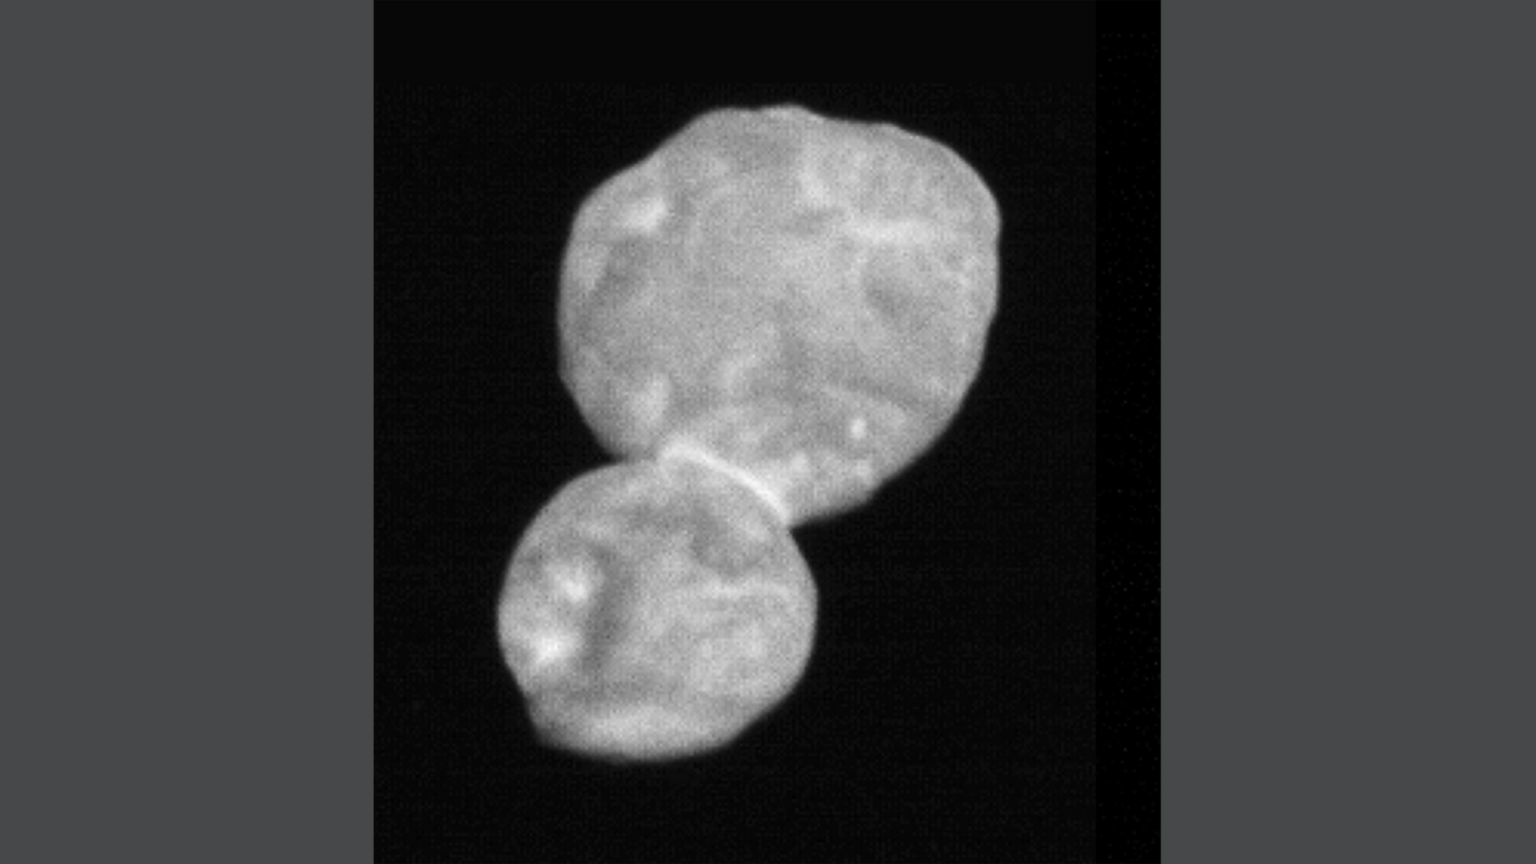 This image taken by the Long-Range Reconnaissance Imager (LORRI) is the most detailed of Ultima Thule returned so far by the New Horizons spacecraft. (Credit: NASA/Johns Hopkins University Applied Physics Laboratory/Southwest Research Institute)